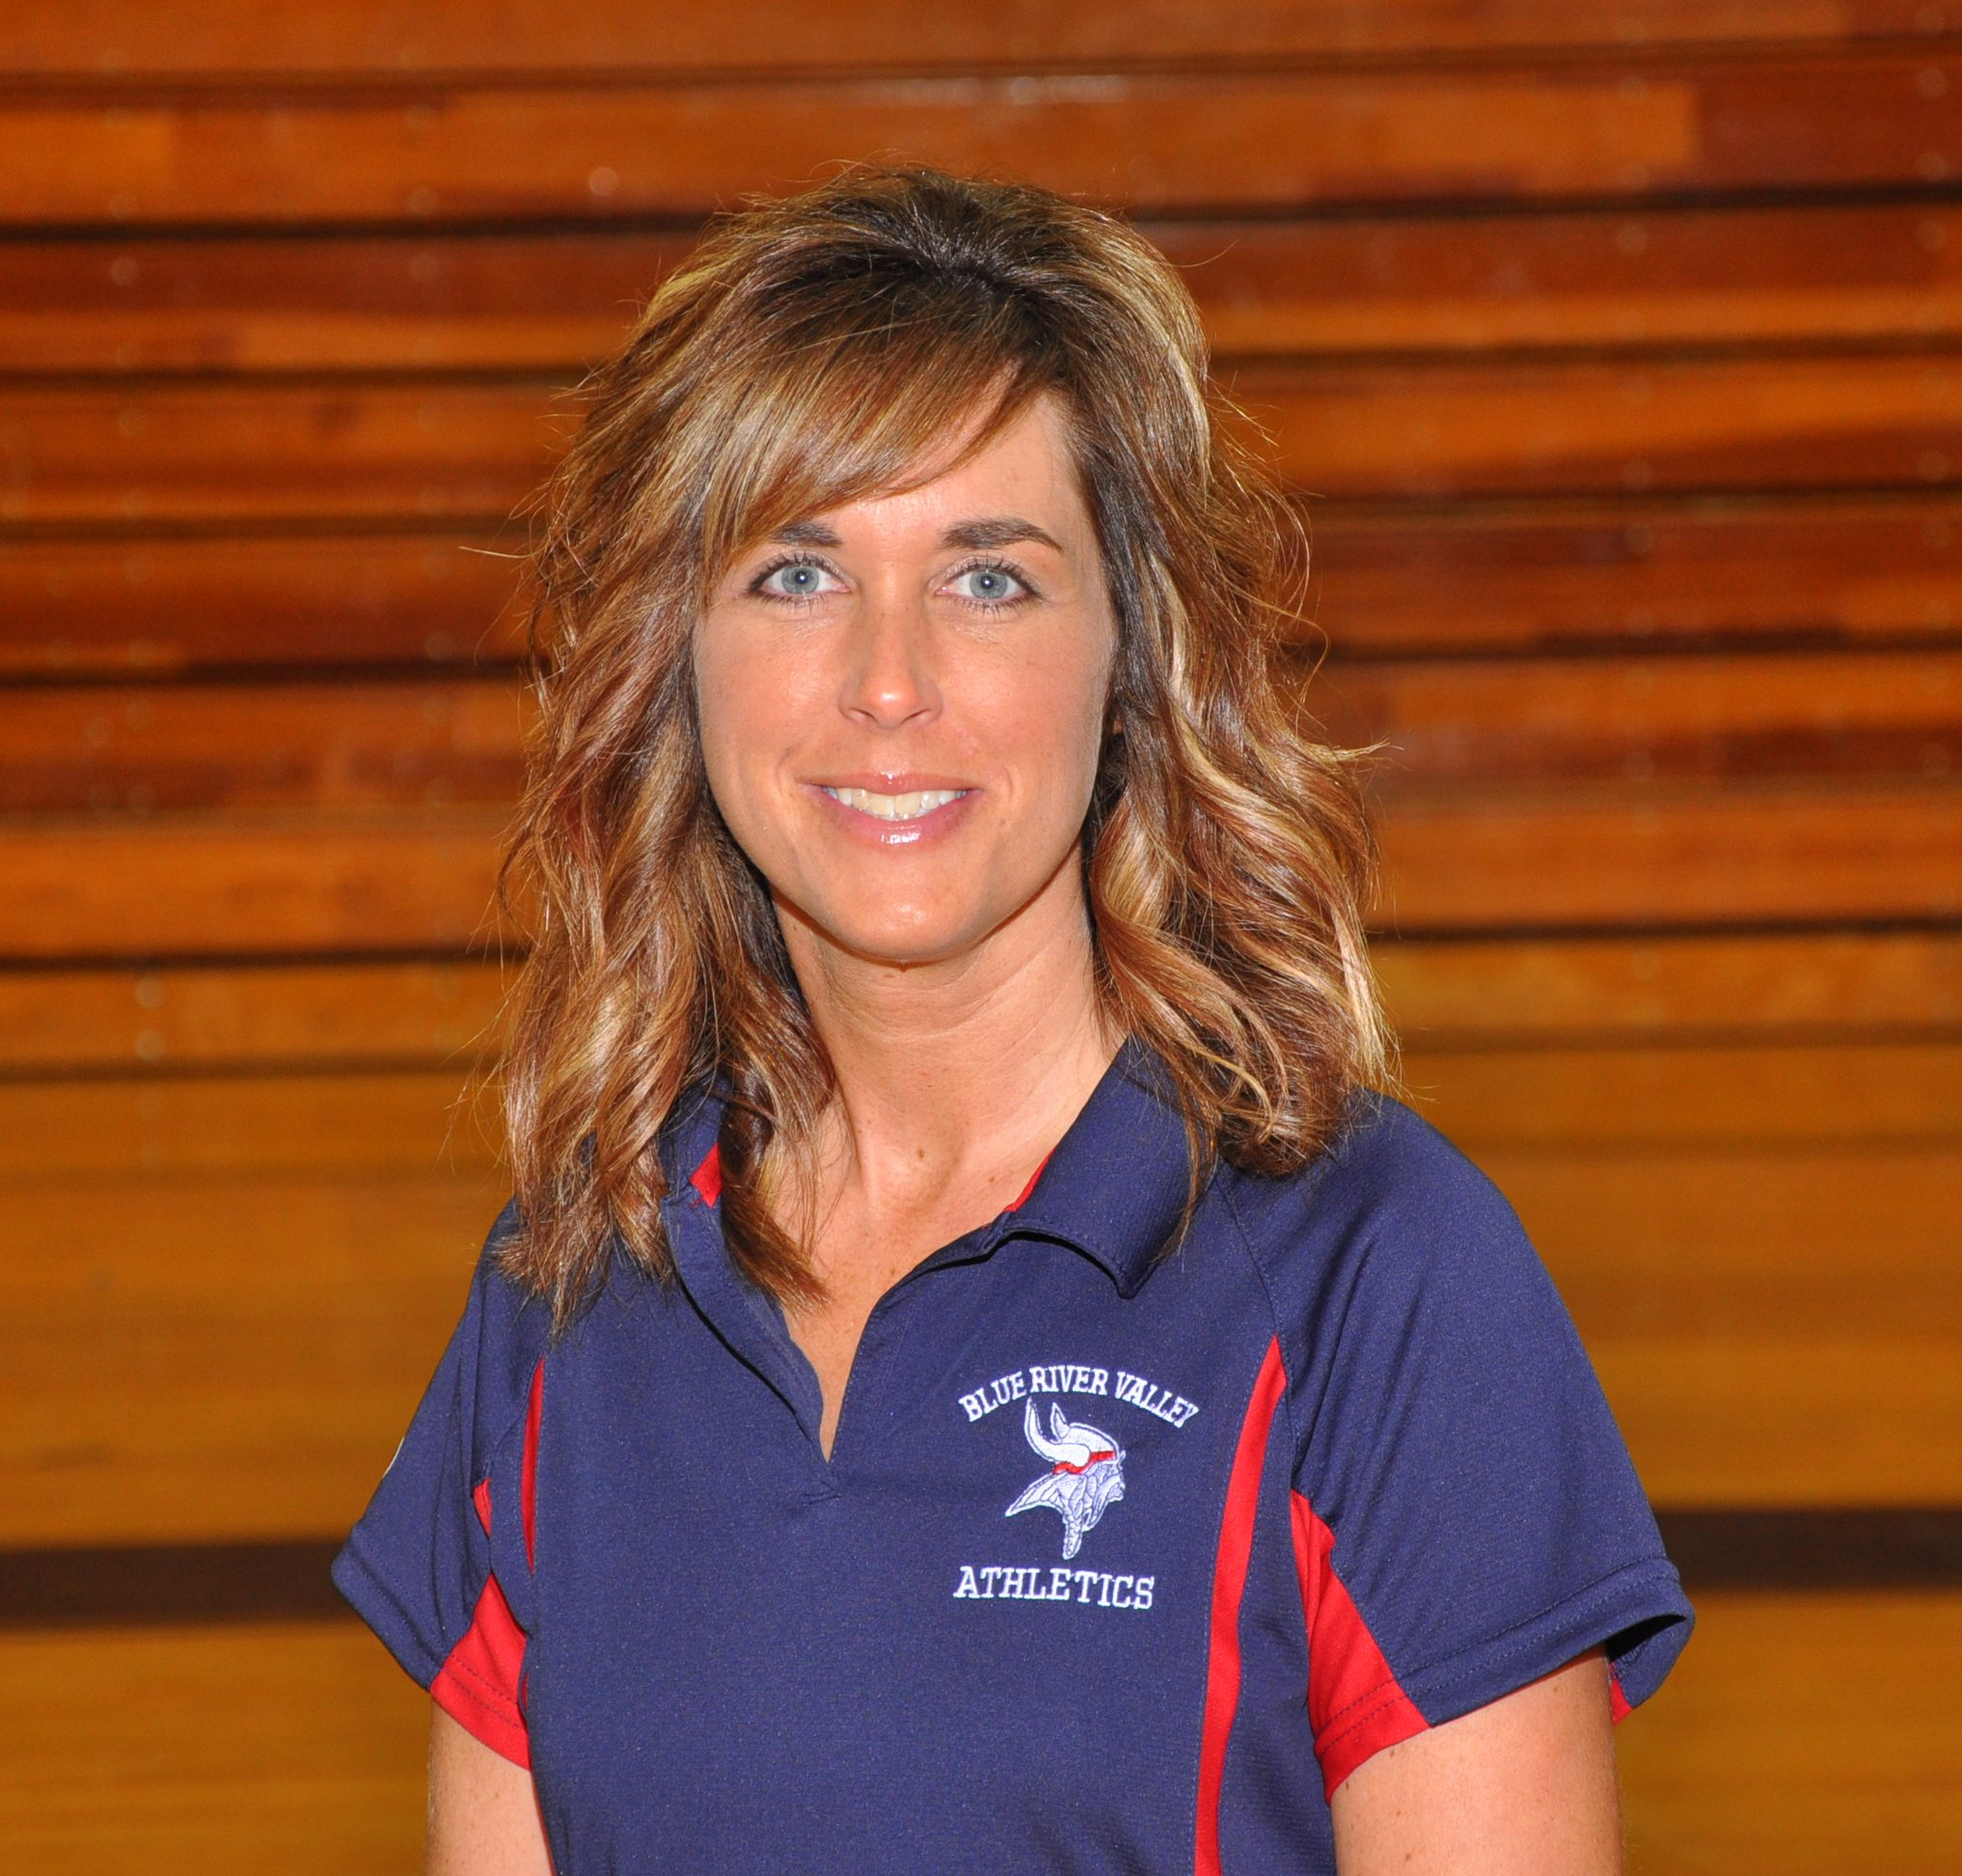 THORNBURGH NAMED HEAD VOLLEYBALL COACH